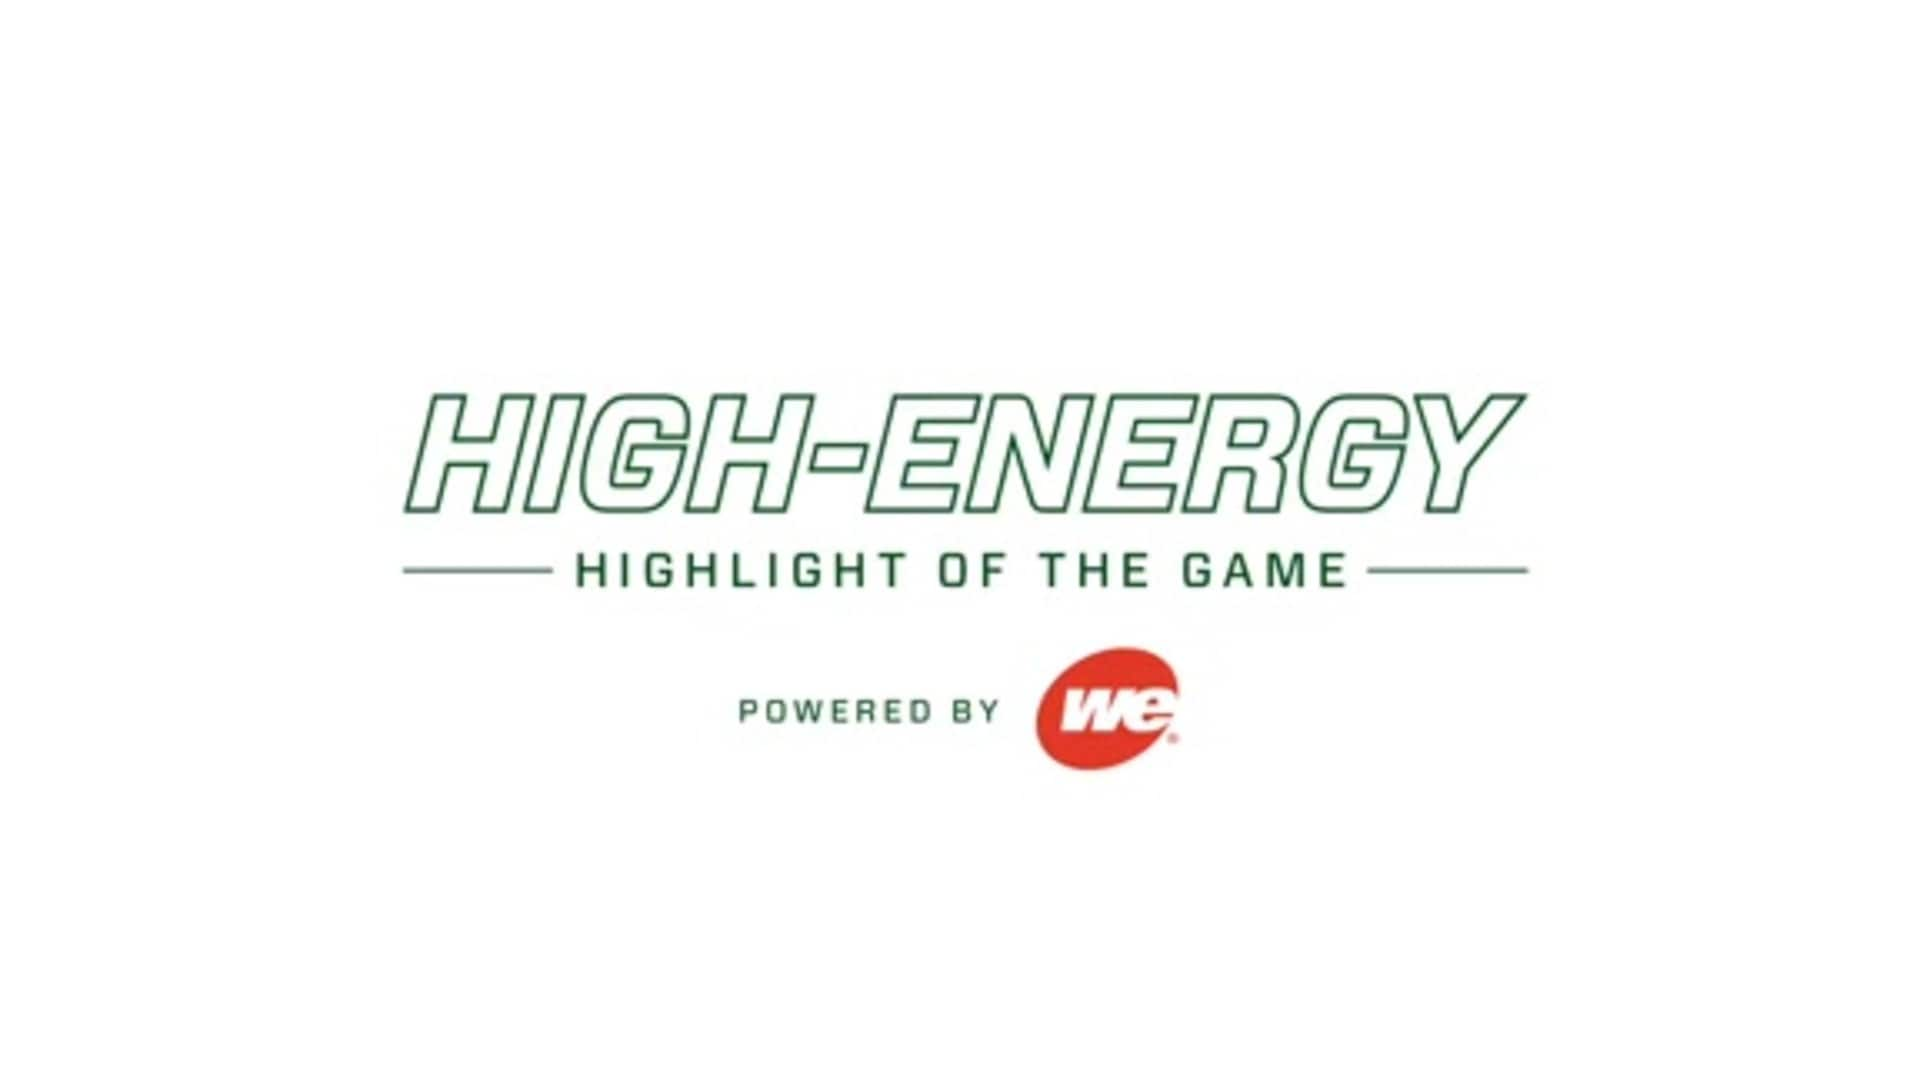 We Energies High-Energy Highlight vs Grizzlies